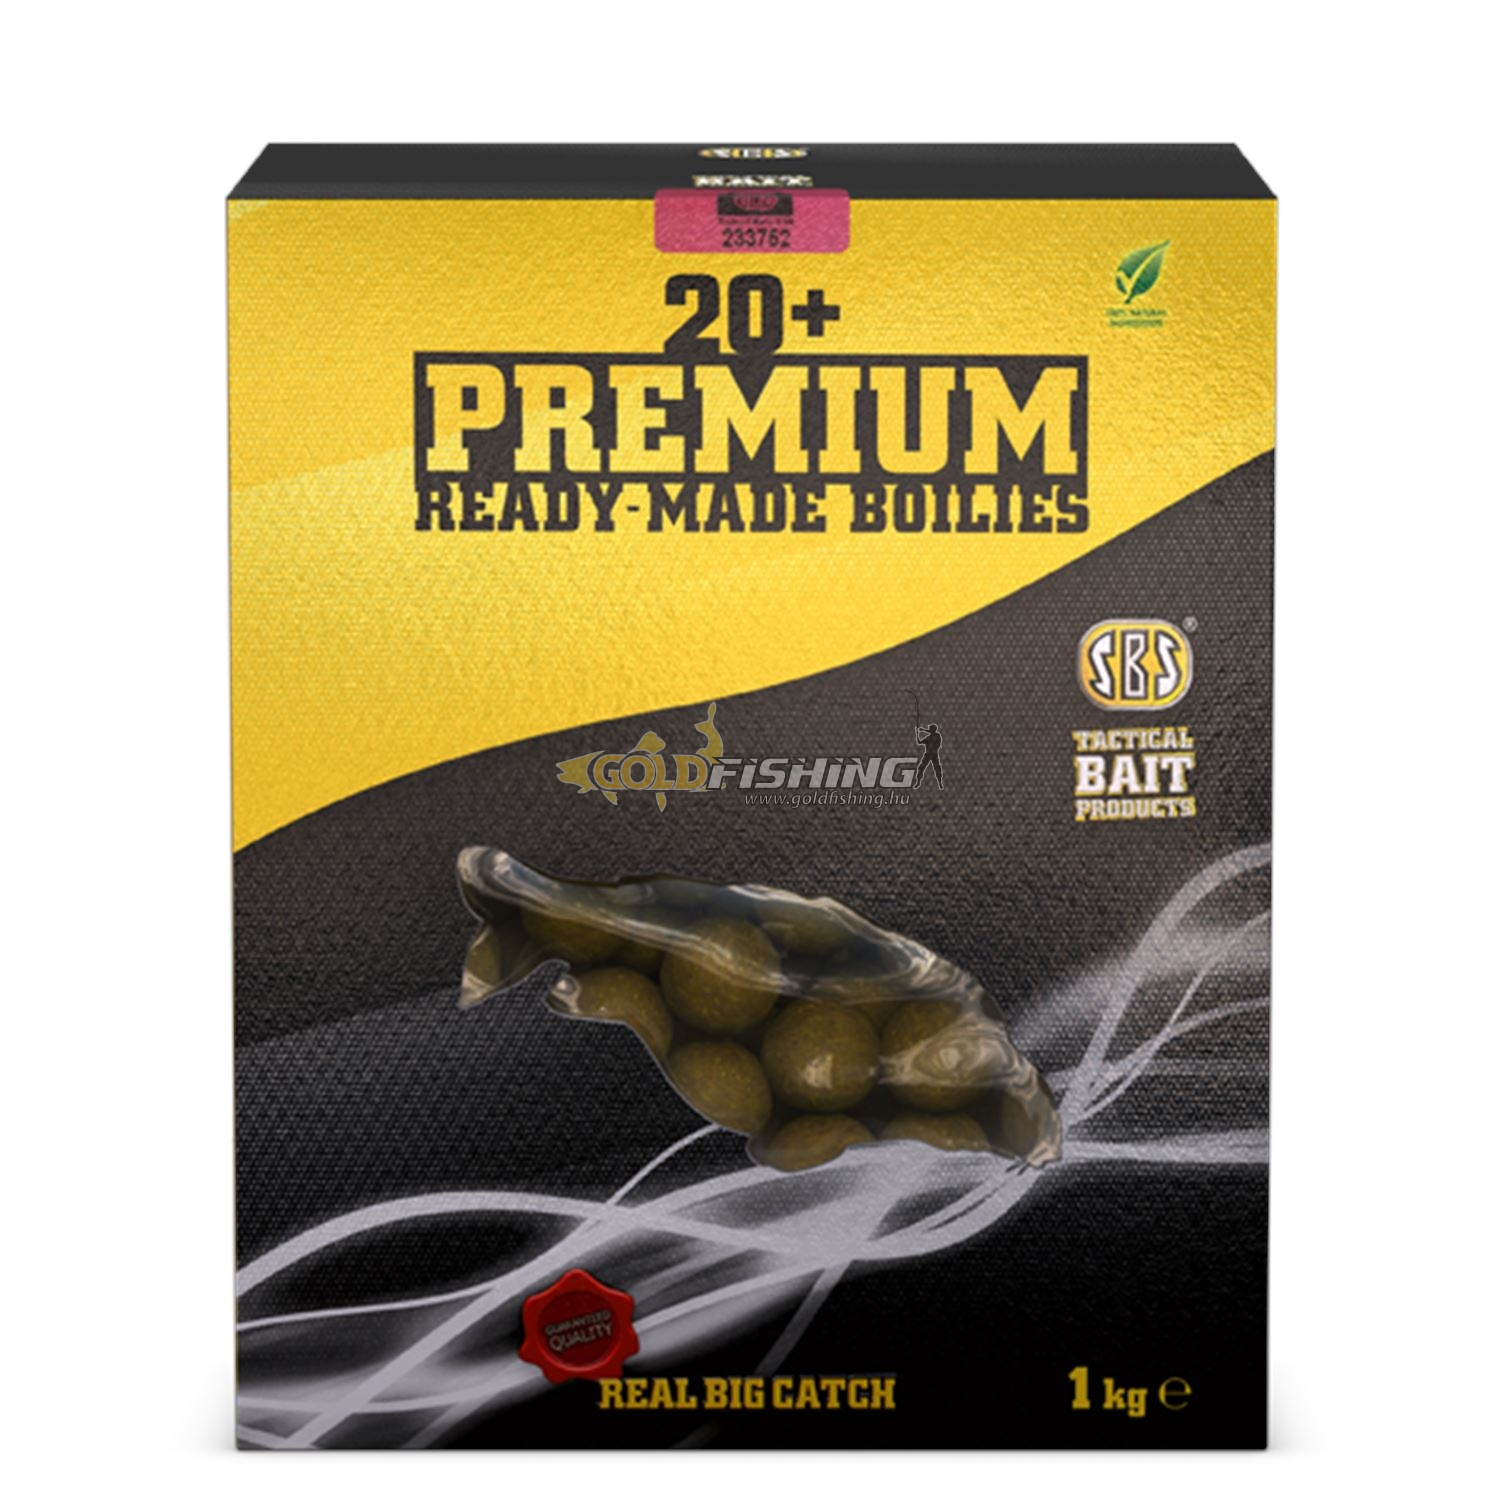 20+ Premium Ready-Made Boilies - Krill & Halibut